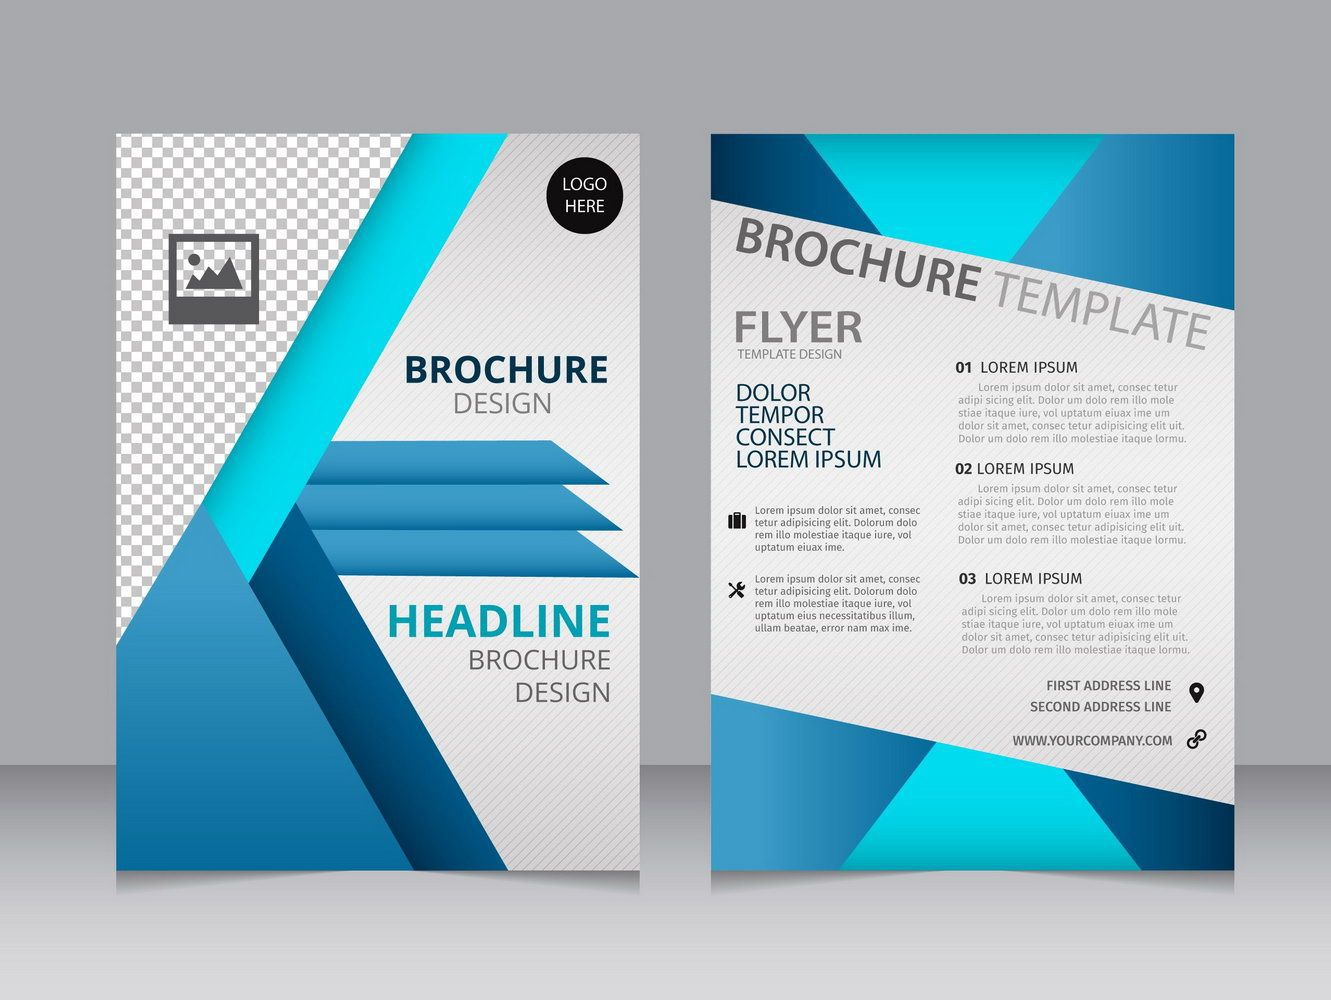 003 Awful Word Template Free Download Image  Downloads Layout Microsoft 2007 Simple Cv 2019Full